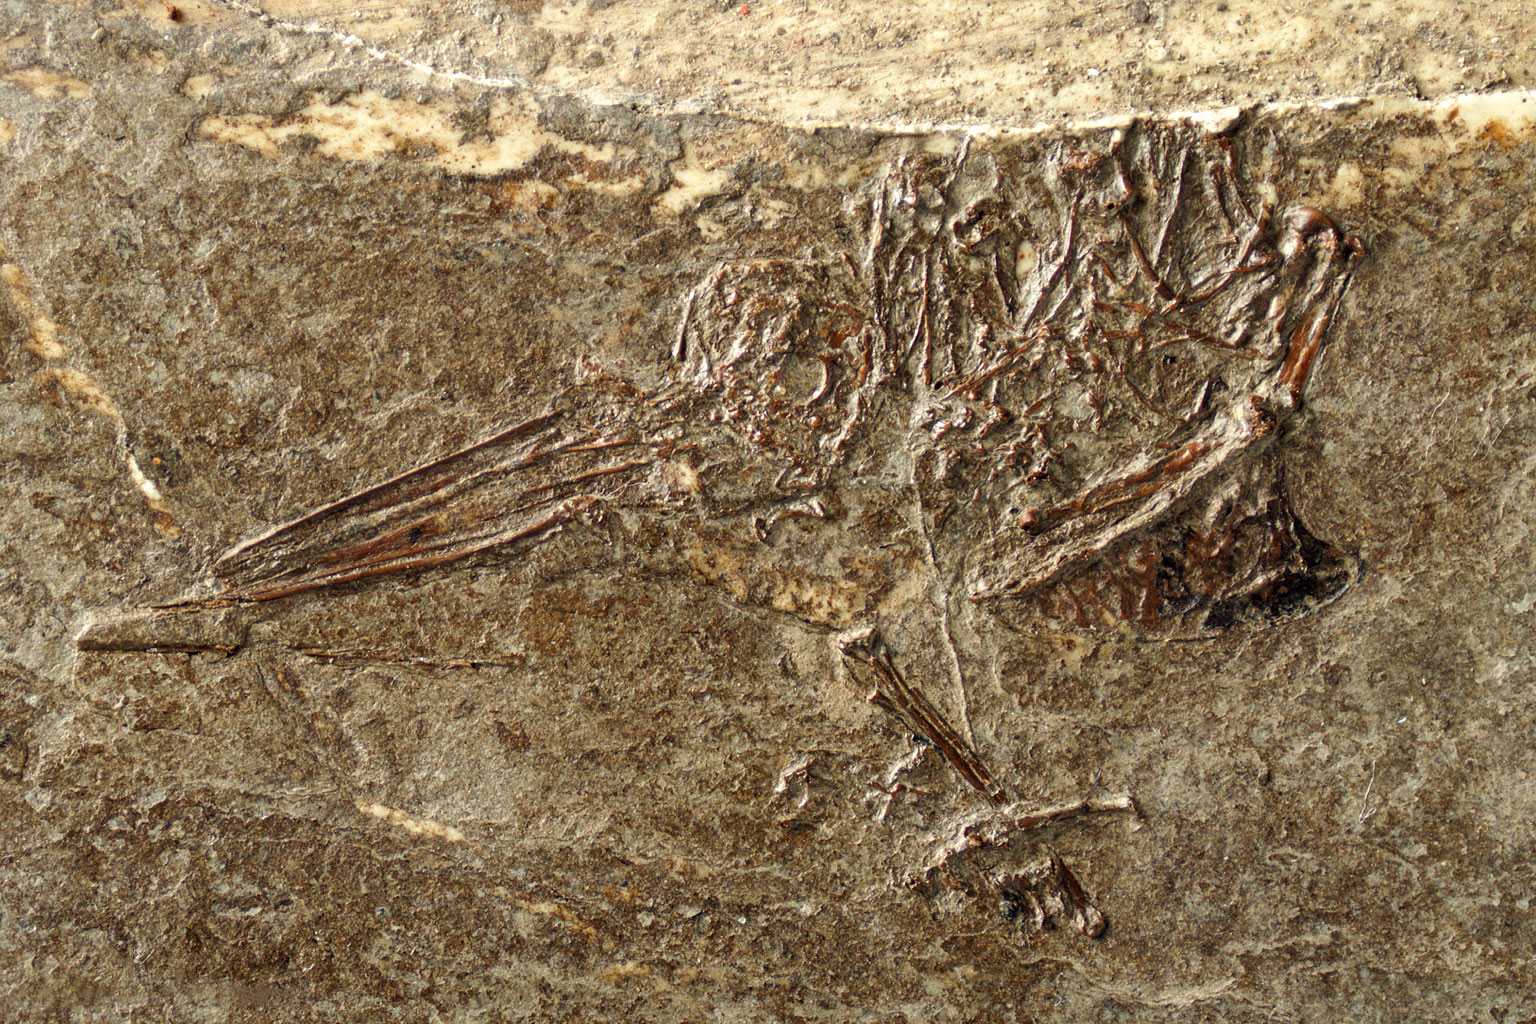 Dug up by private collectors in Frauenweiler, Germany, Eurotrochilus inexpectatus was identified as an ancient hummingbird, largely by the structure of its wings. Sven Tränkner/Senckenberg Research Institute